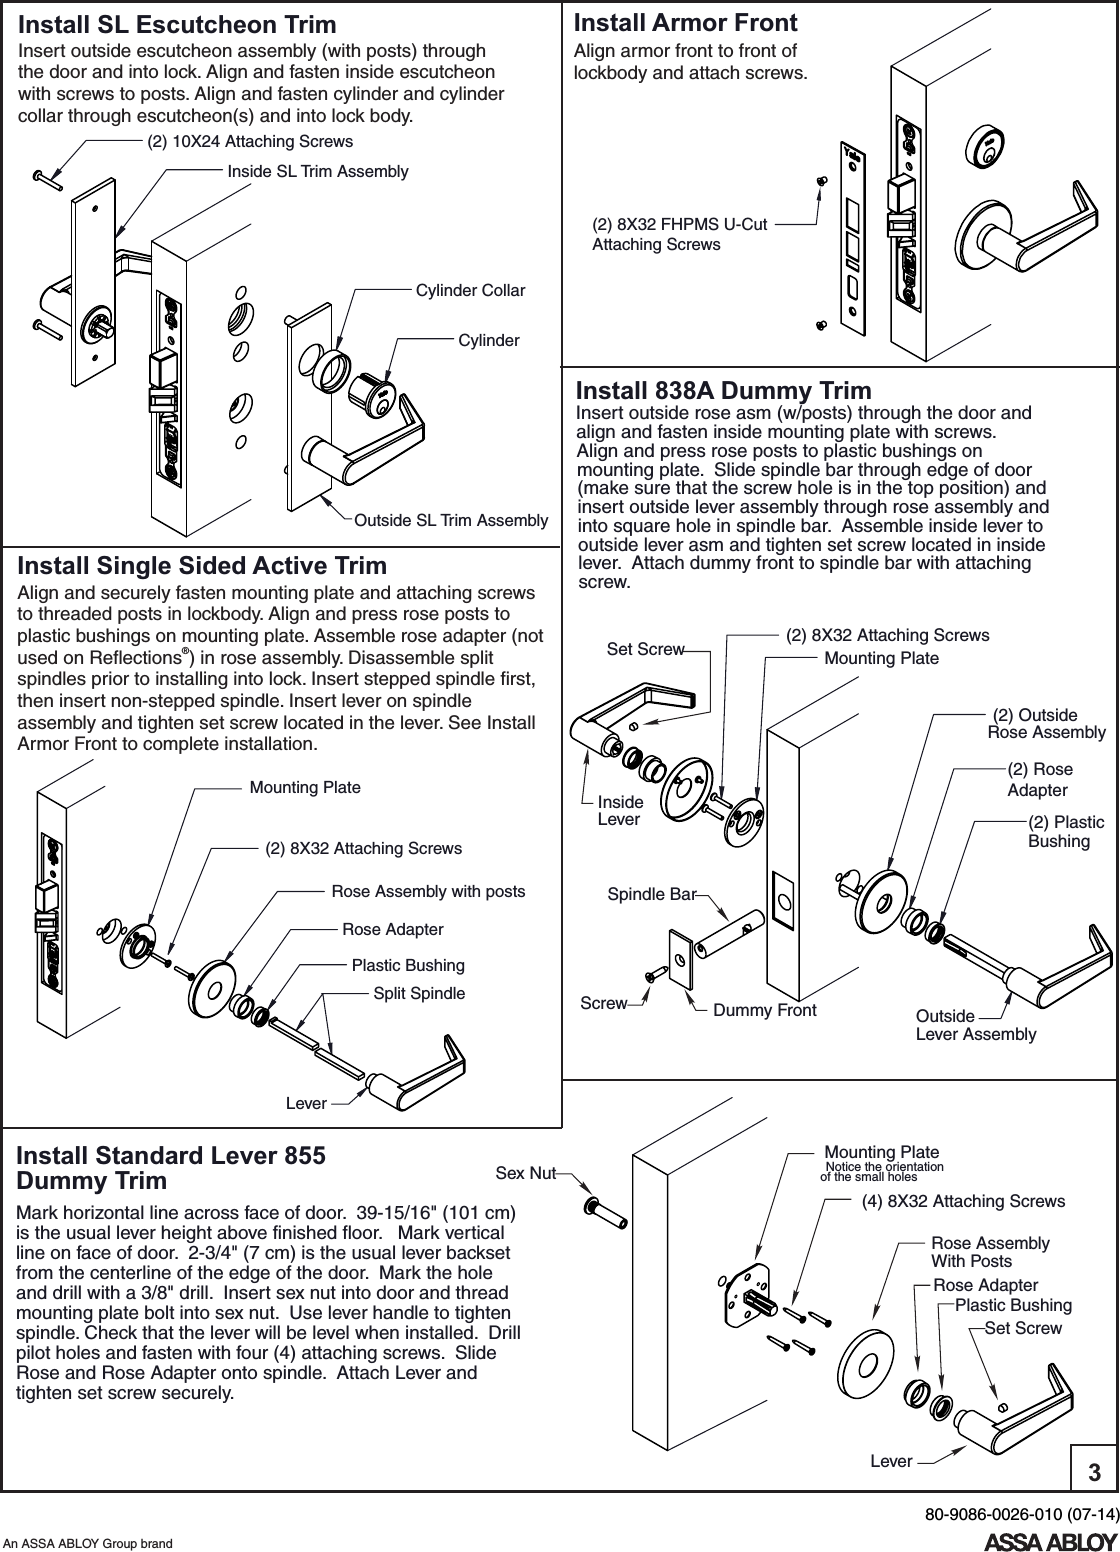 How To Rehand Mortise Lockset Manual Guide